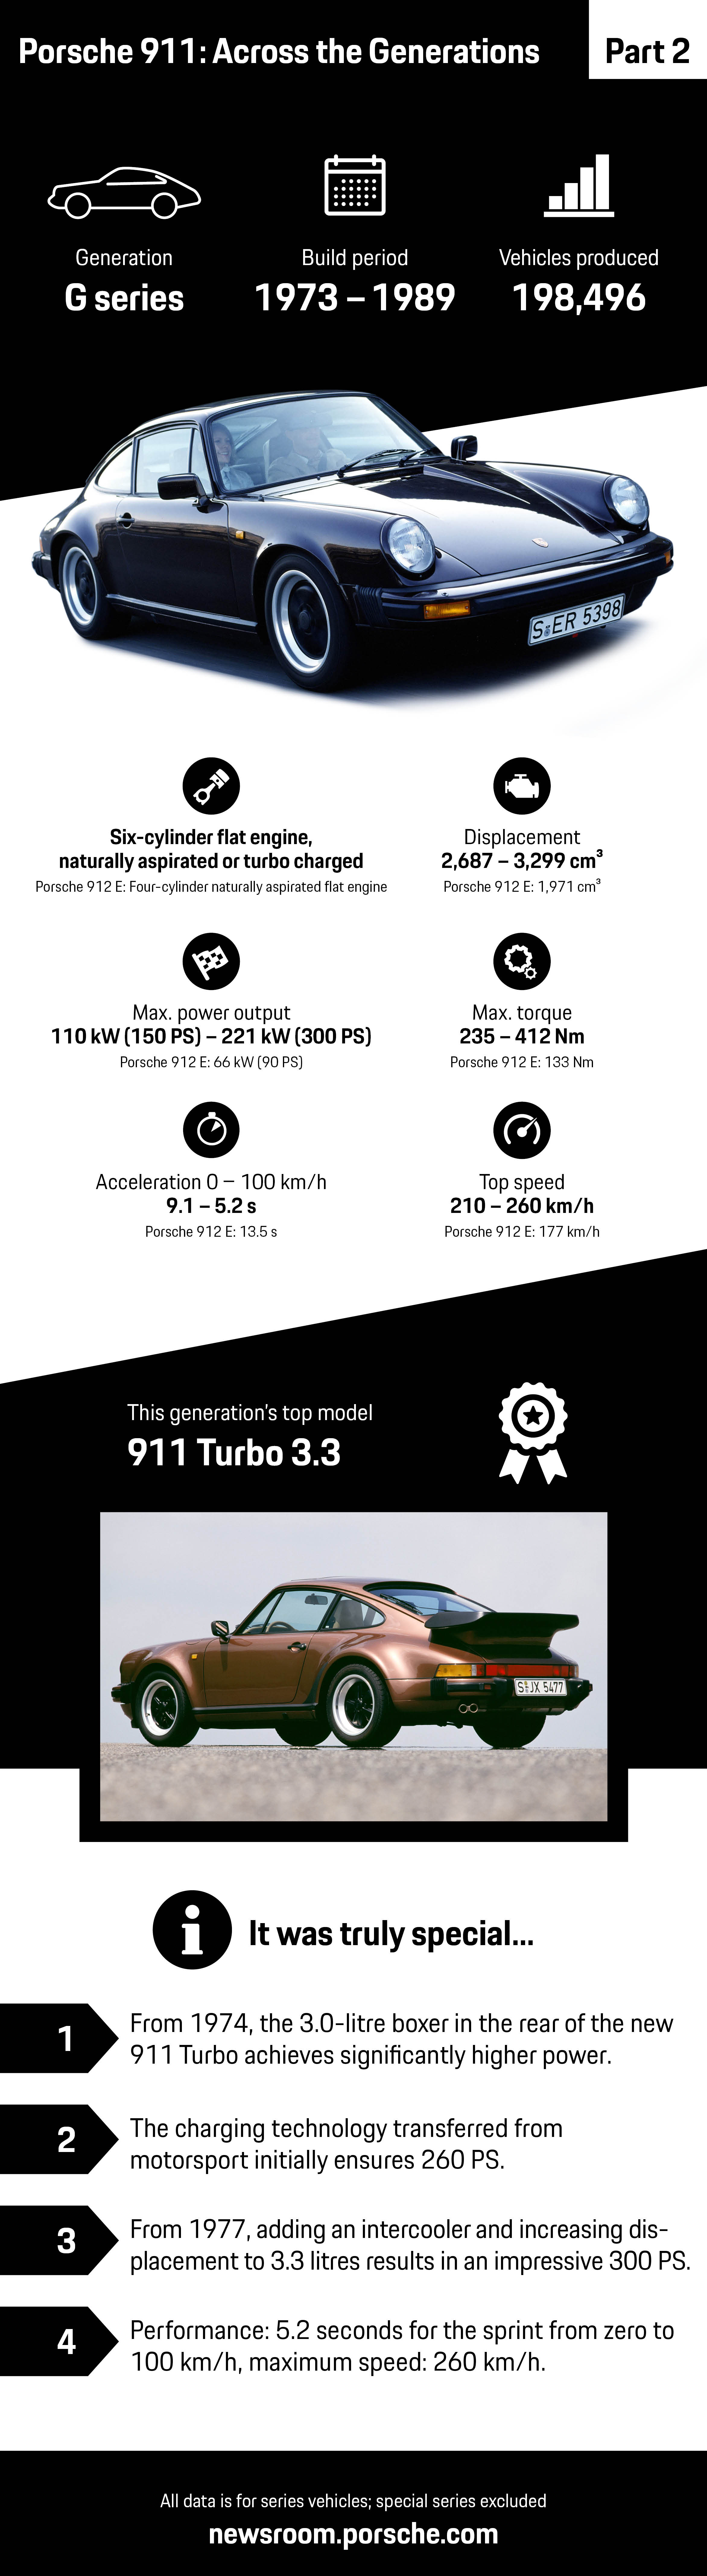 Porsche 911: Across the Generations – part 2, infographic, 2018, Porsche AG